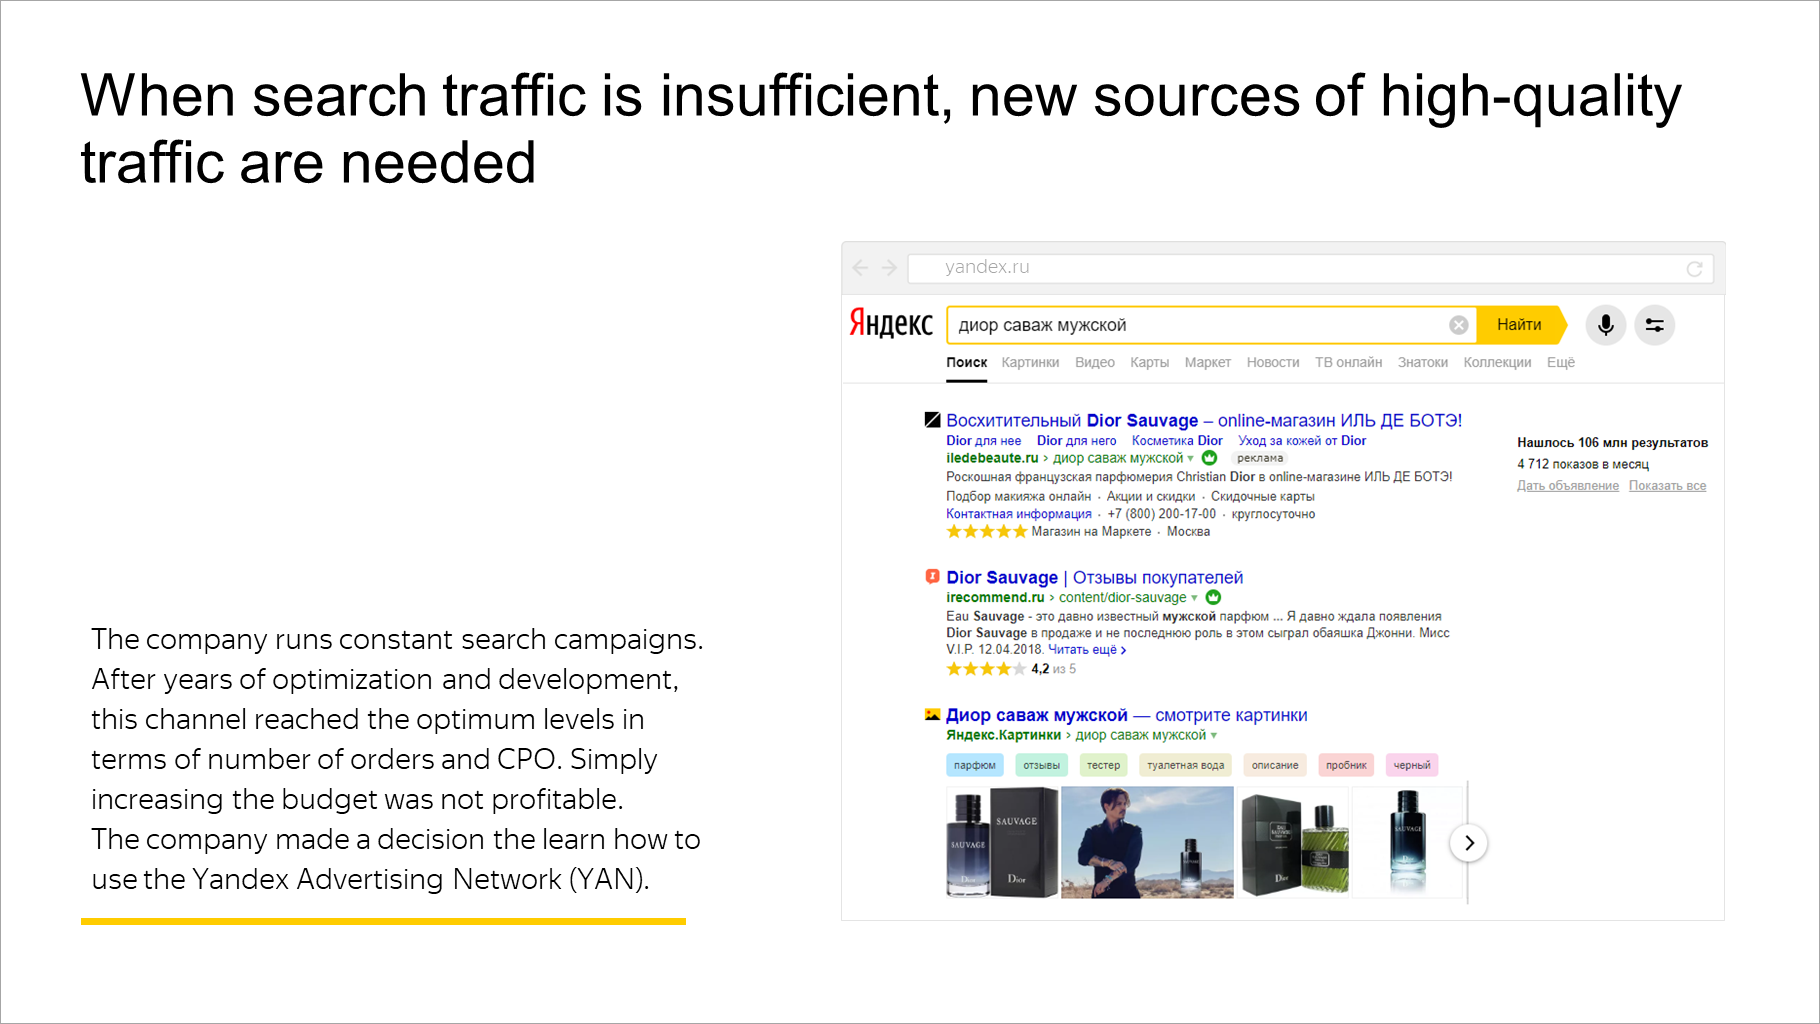 When search traffic is insufficient, new sources of high-quality traffic are needed